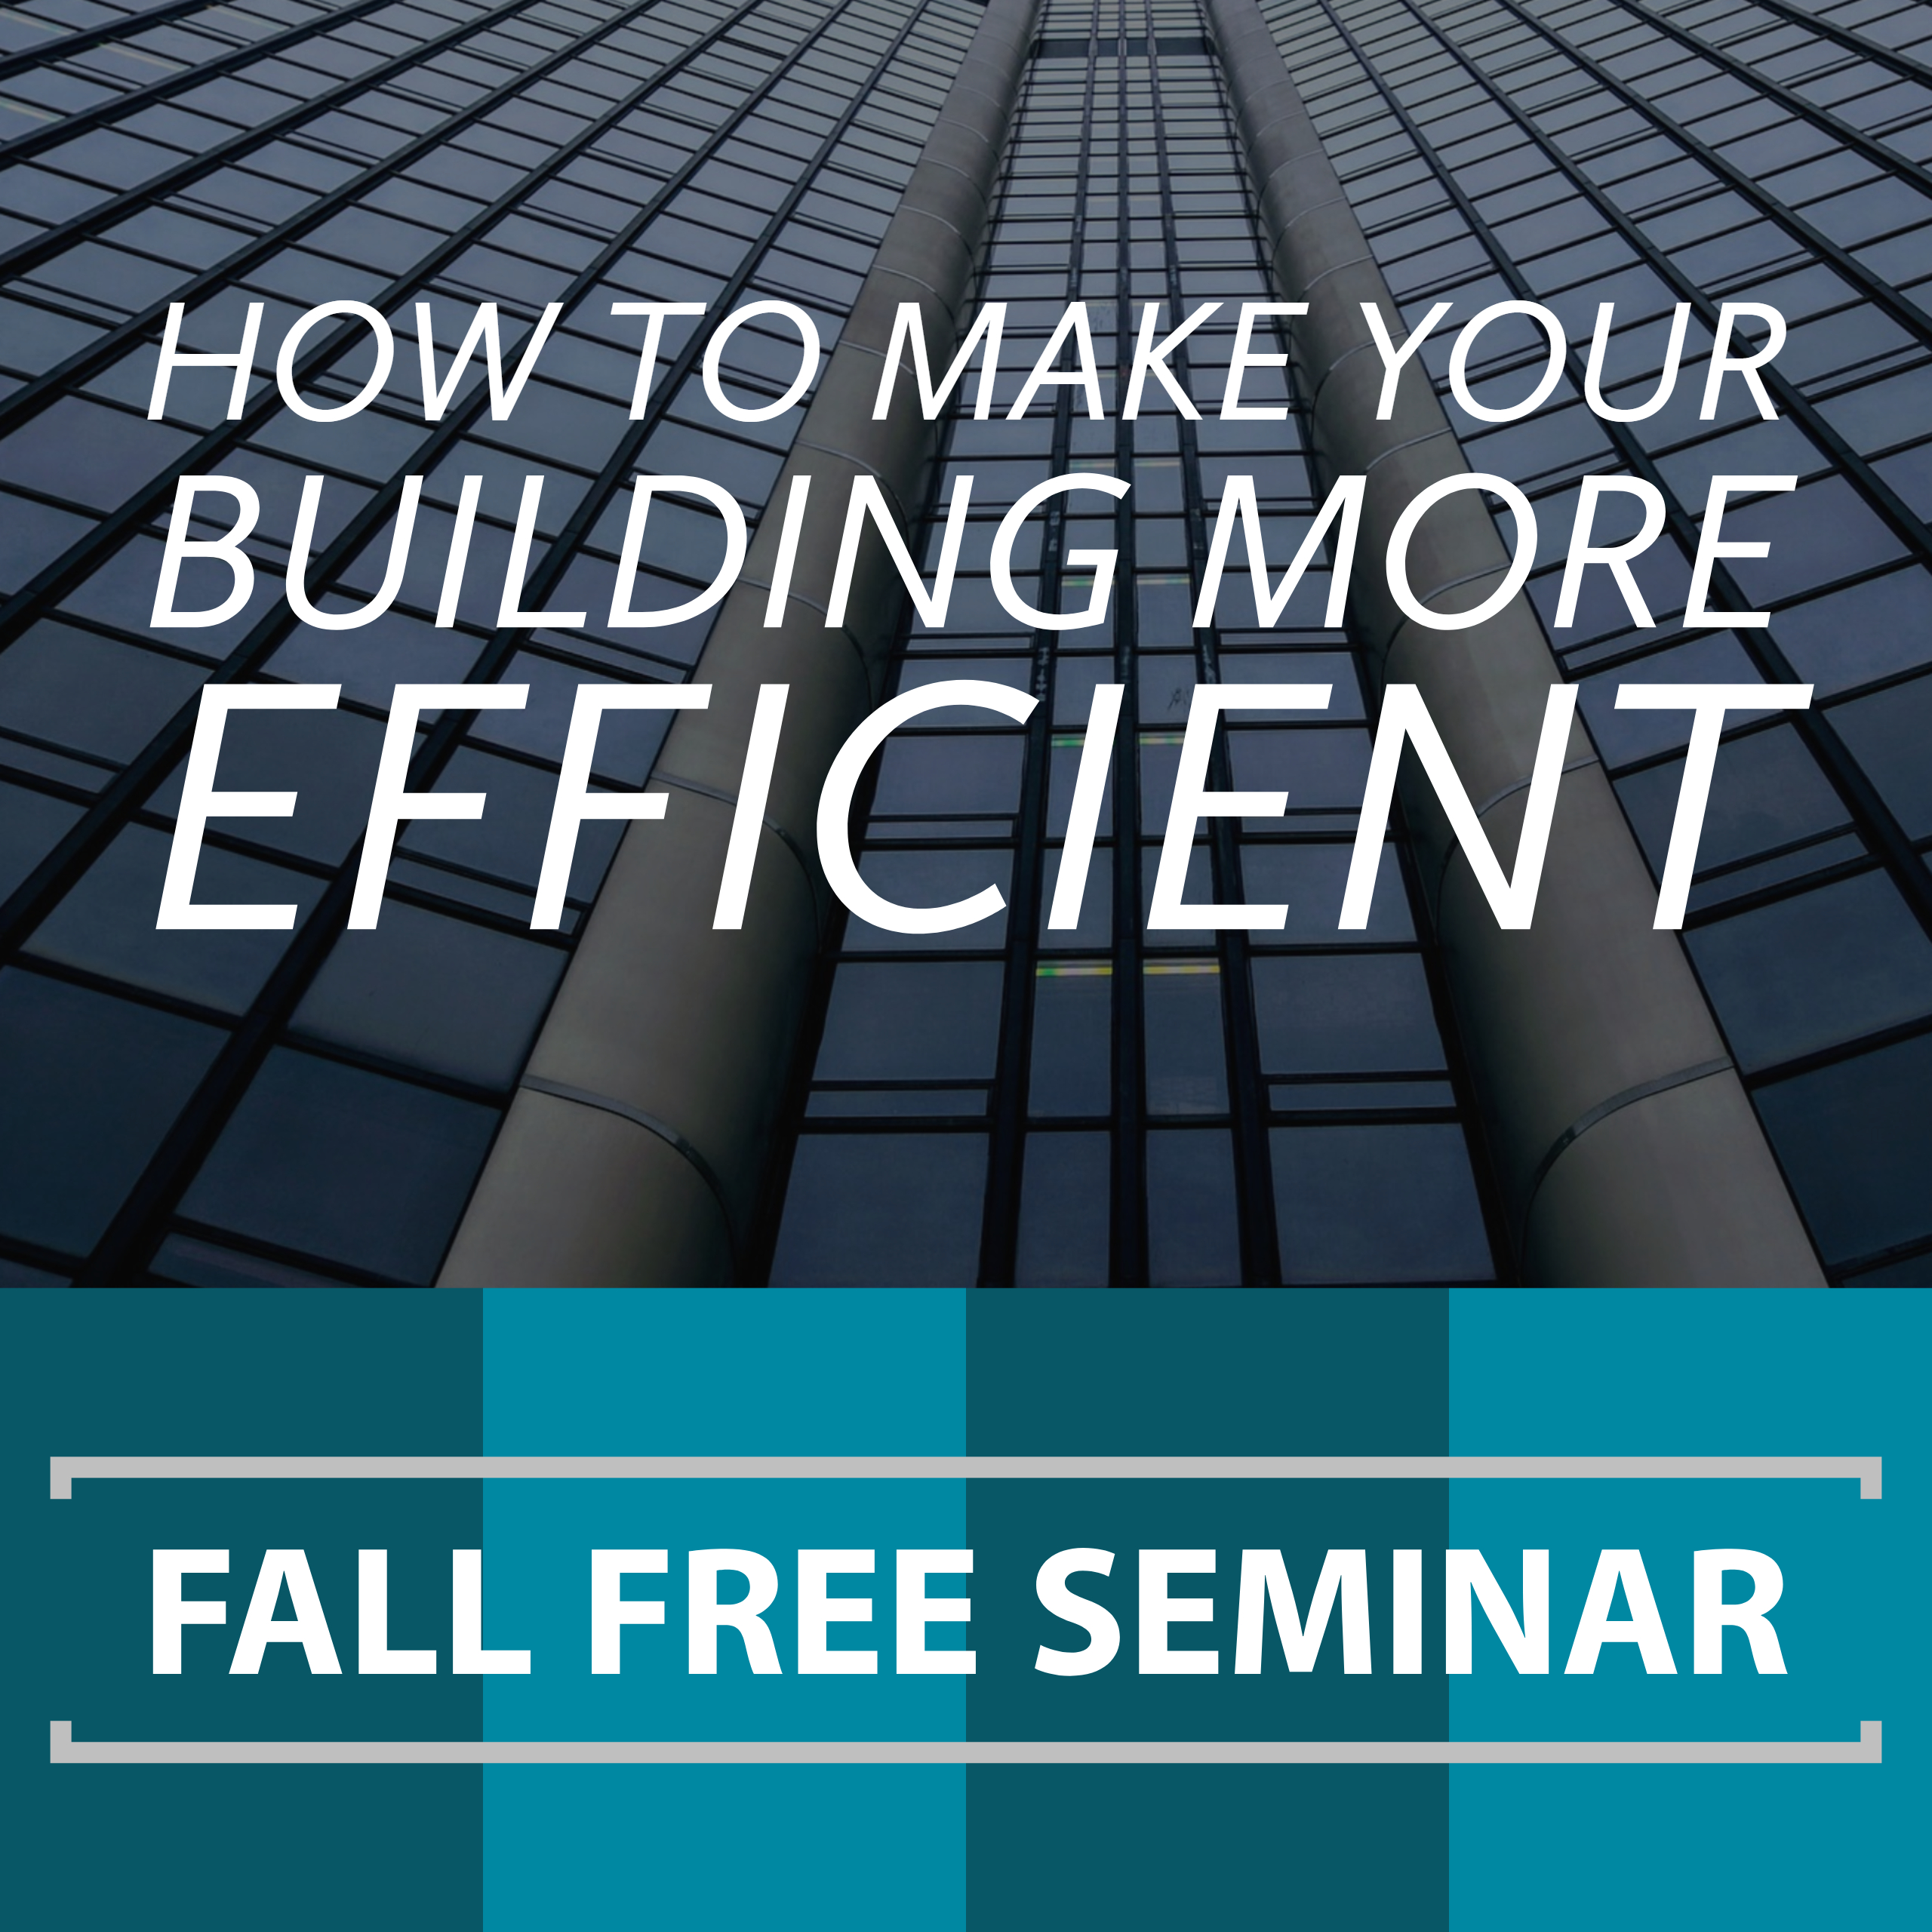 How to Improve Efficiency in Your Building - Free* Seminar